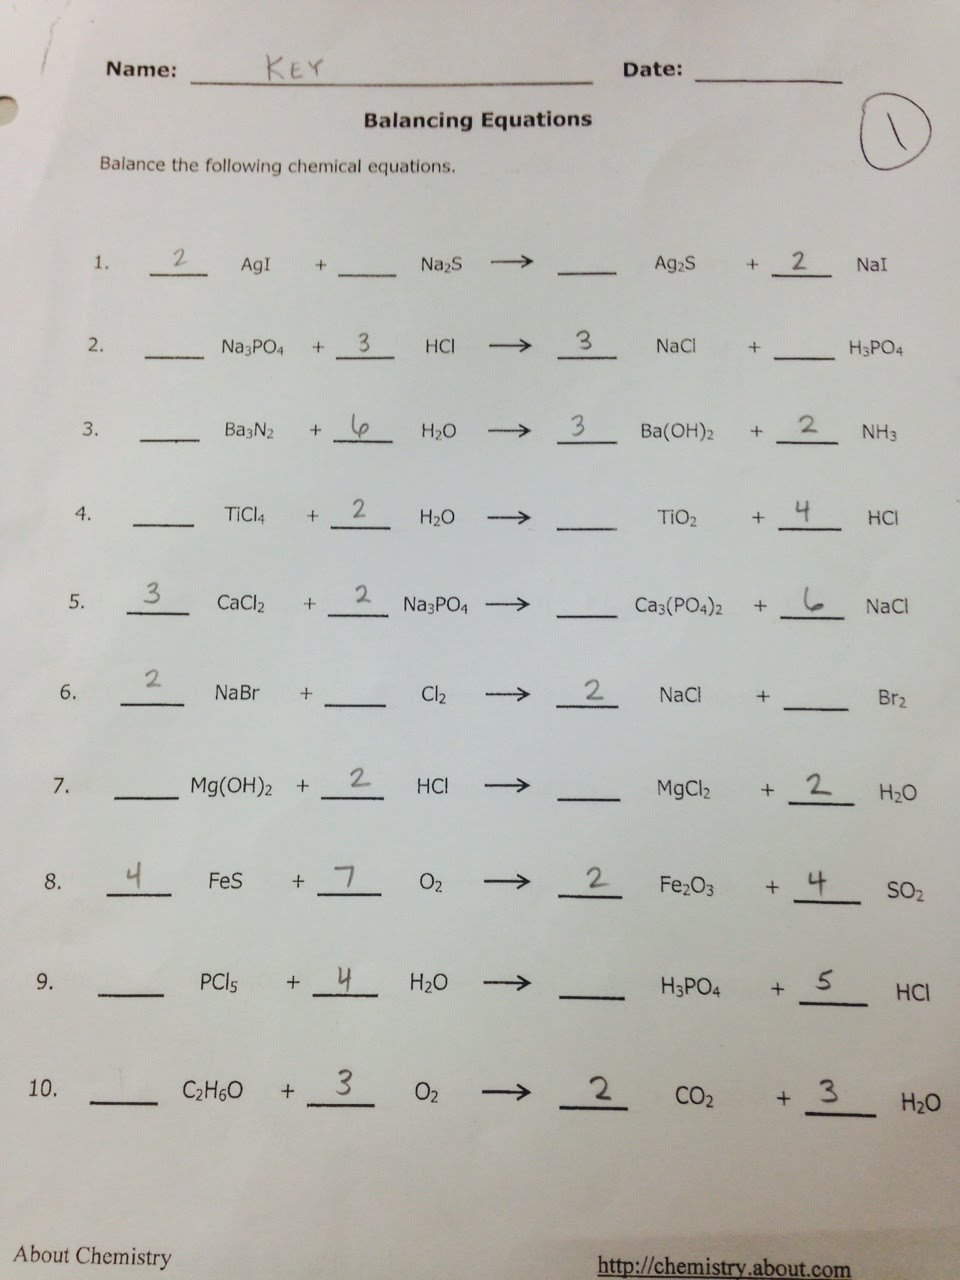 Holt Physical Science Physical Science Worksheets Beautiful Exponent Or Physical Science If8767 Worksheet Answers